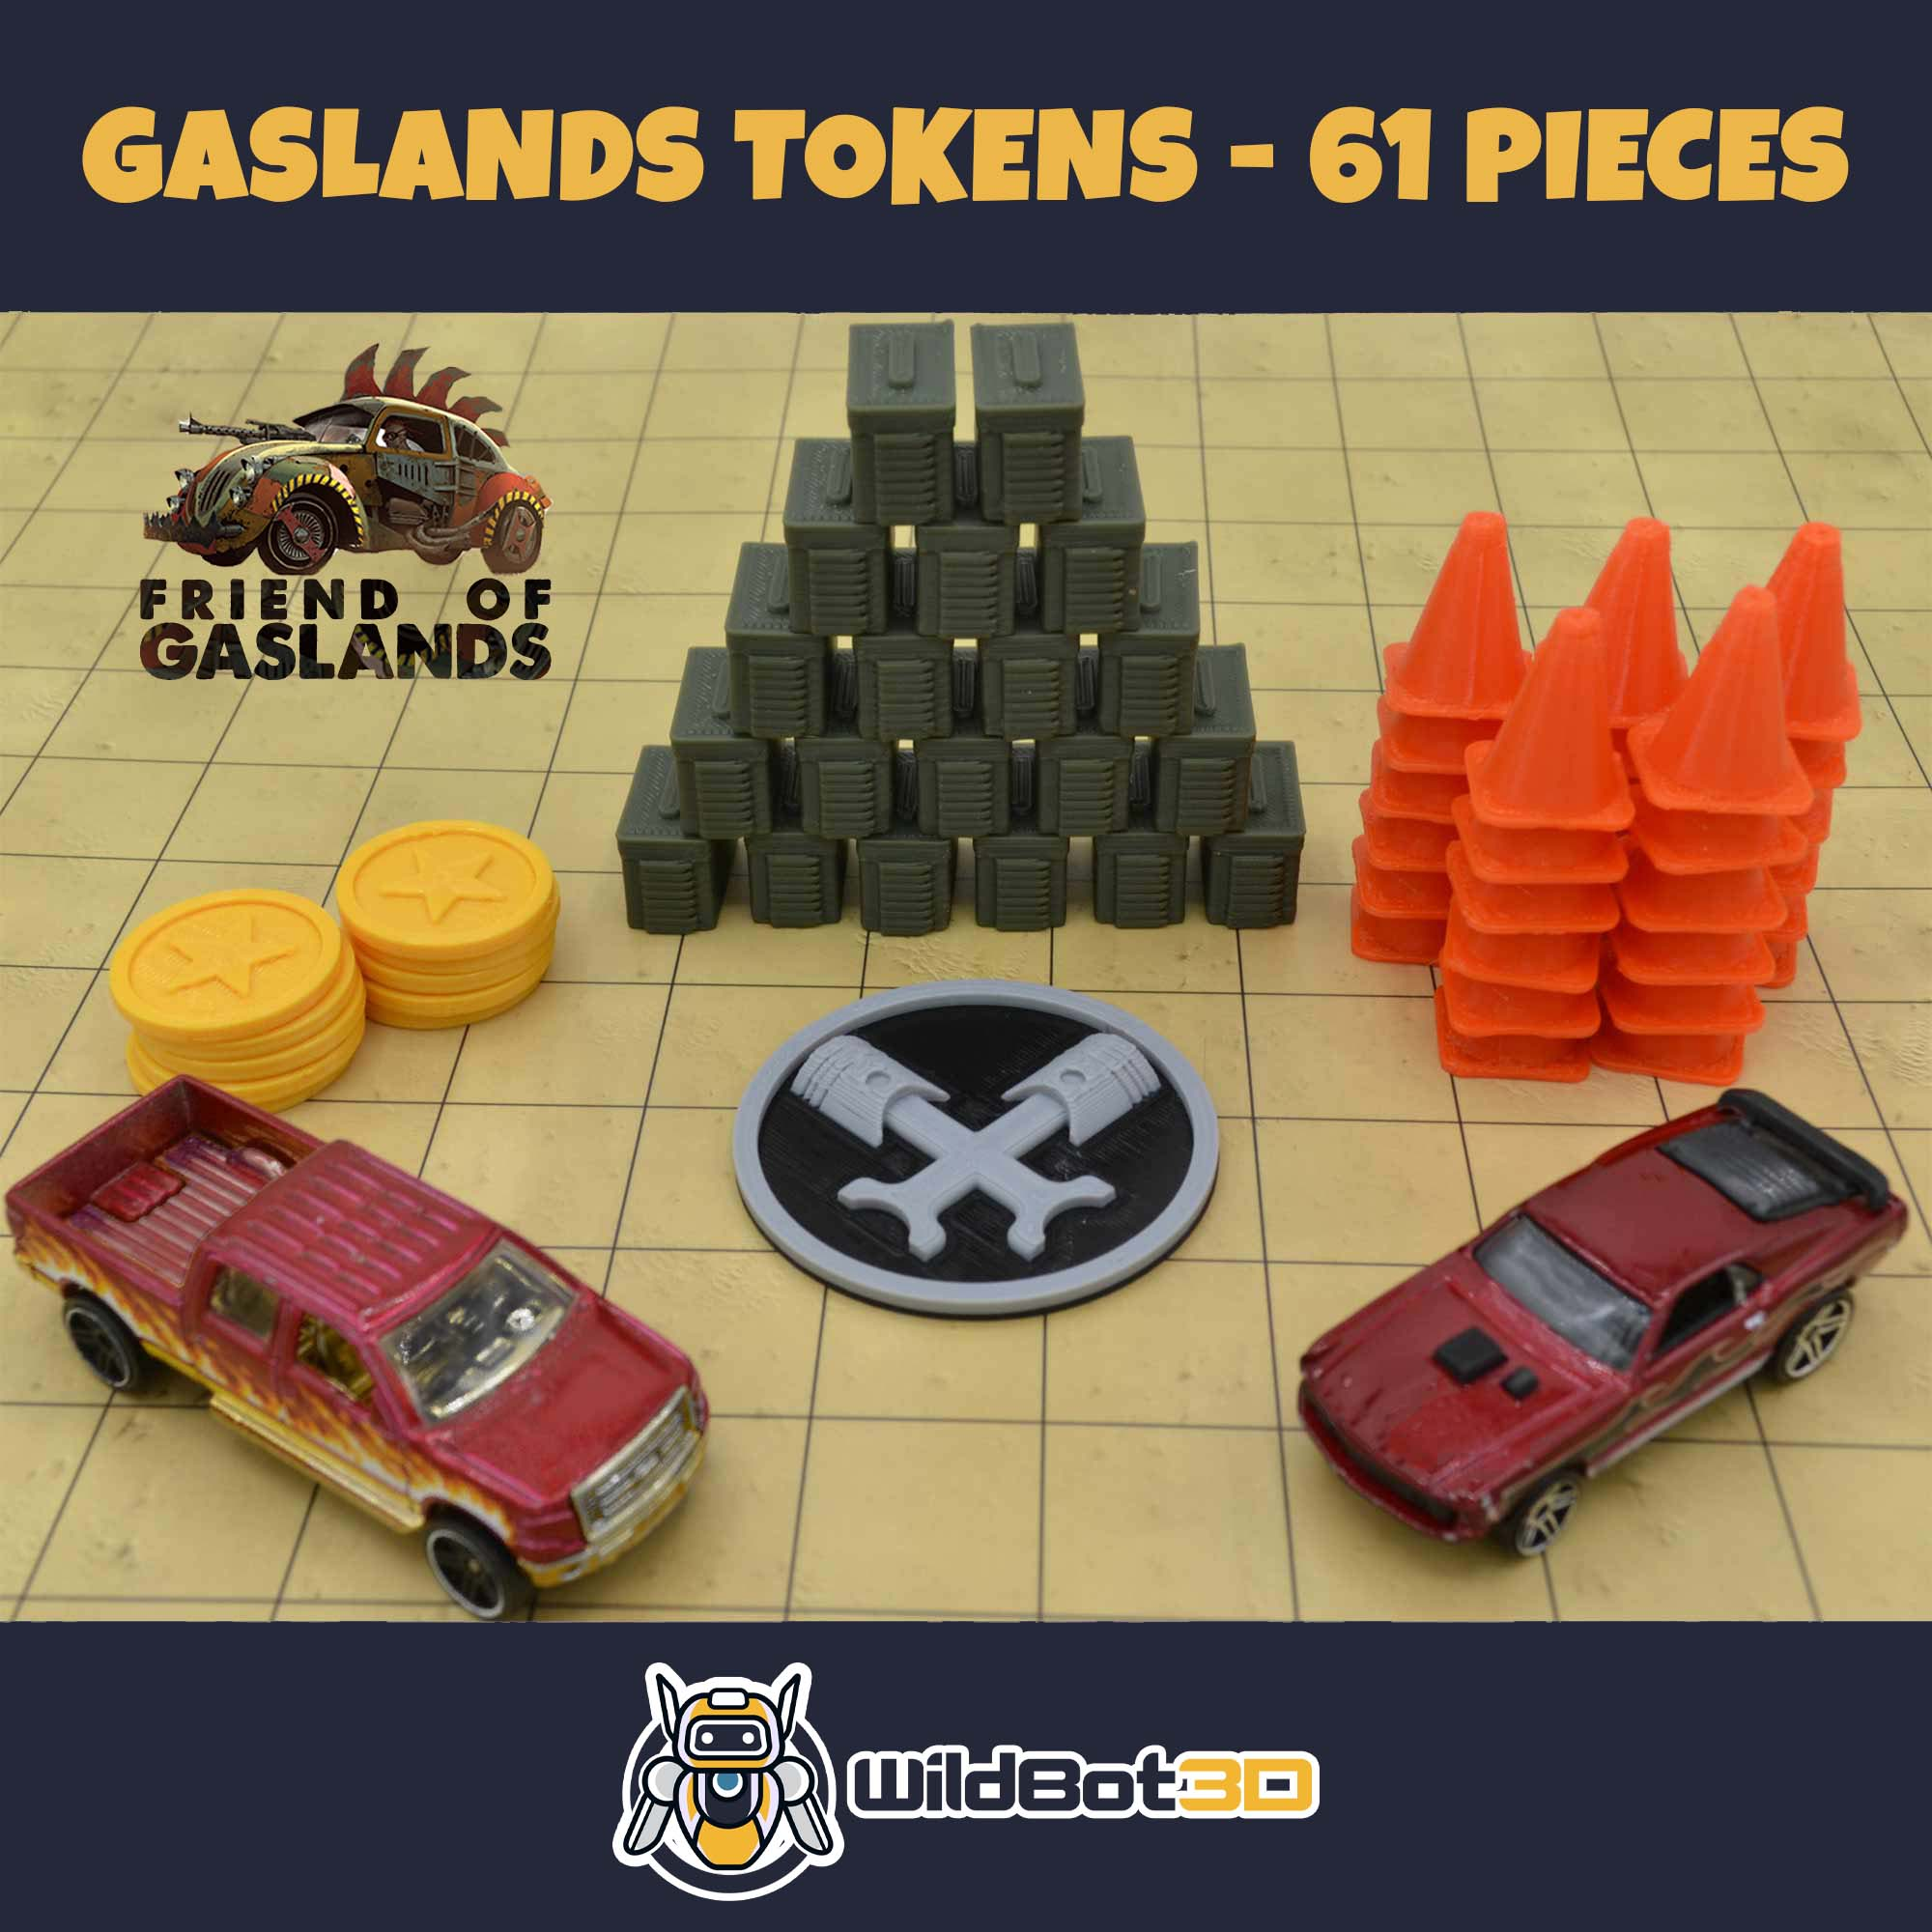 gaslands tokens